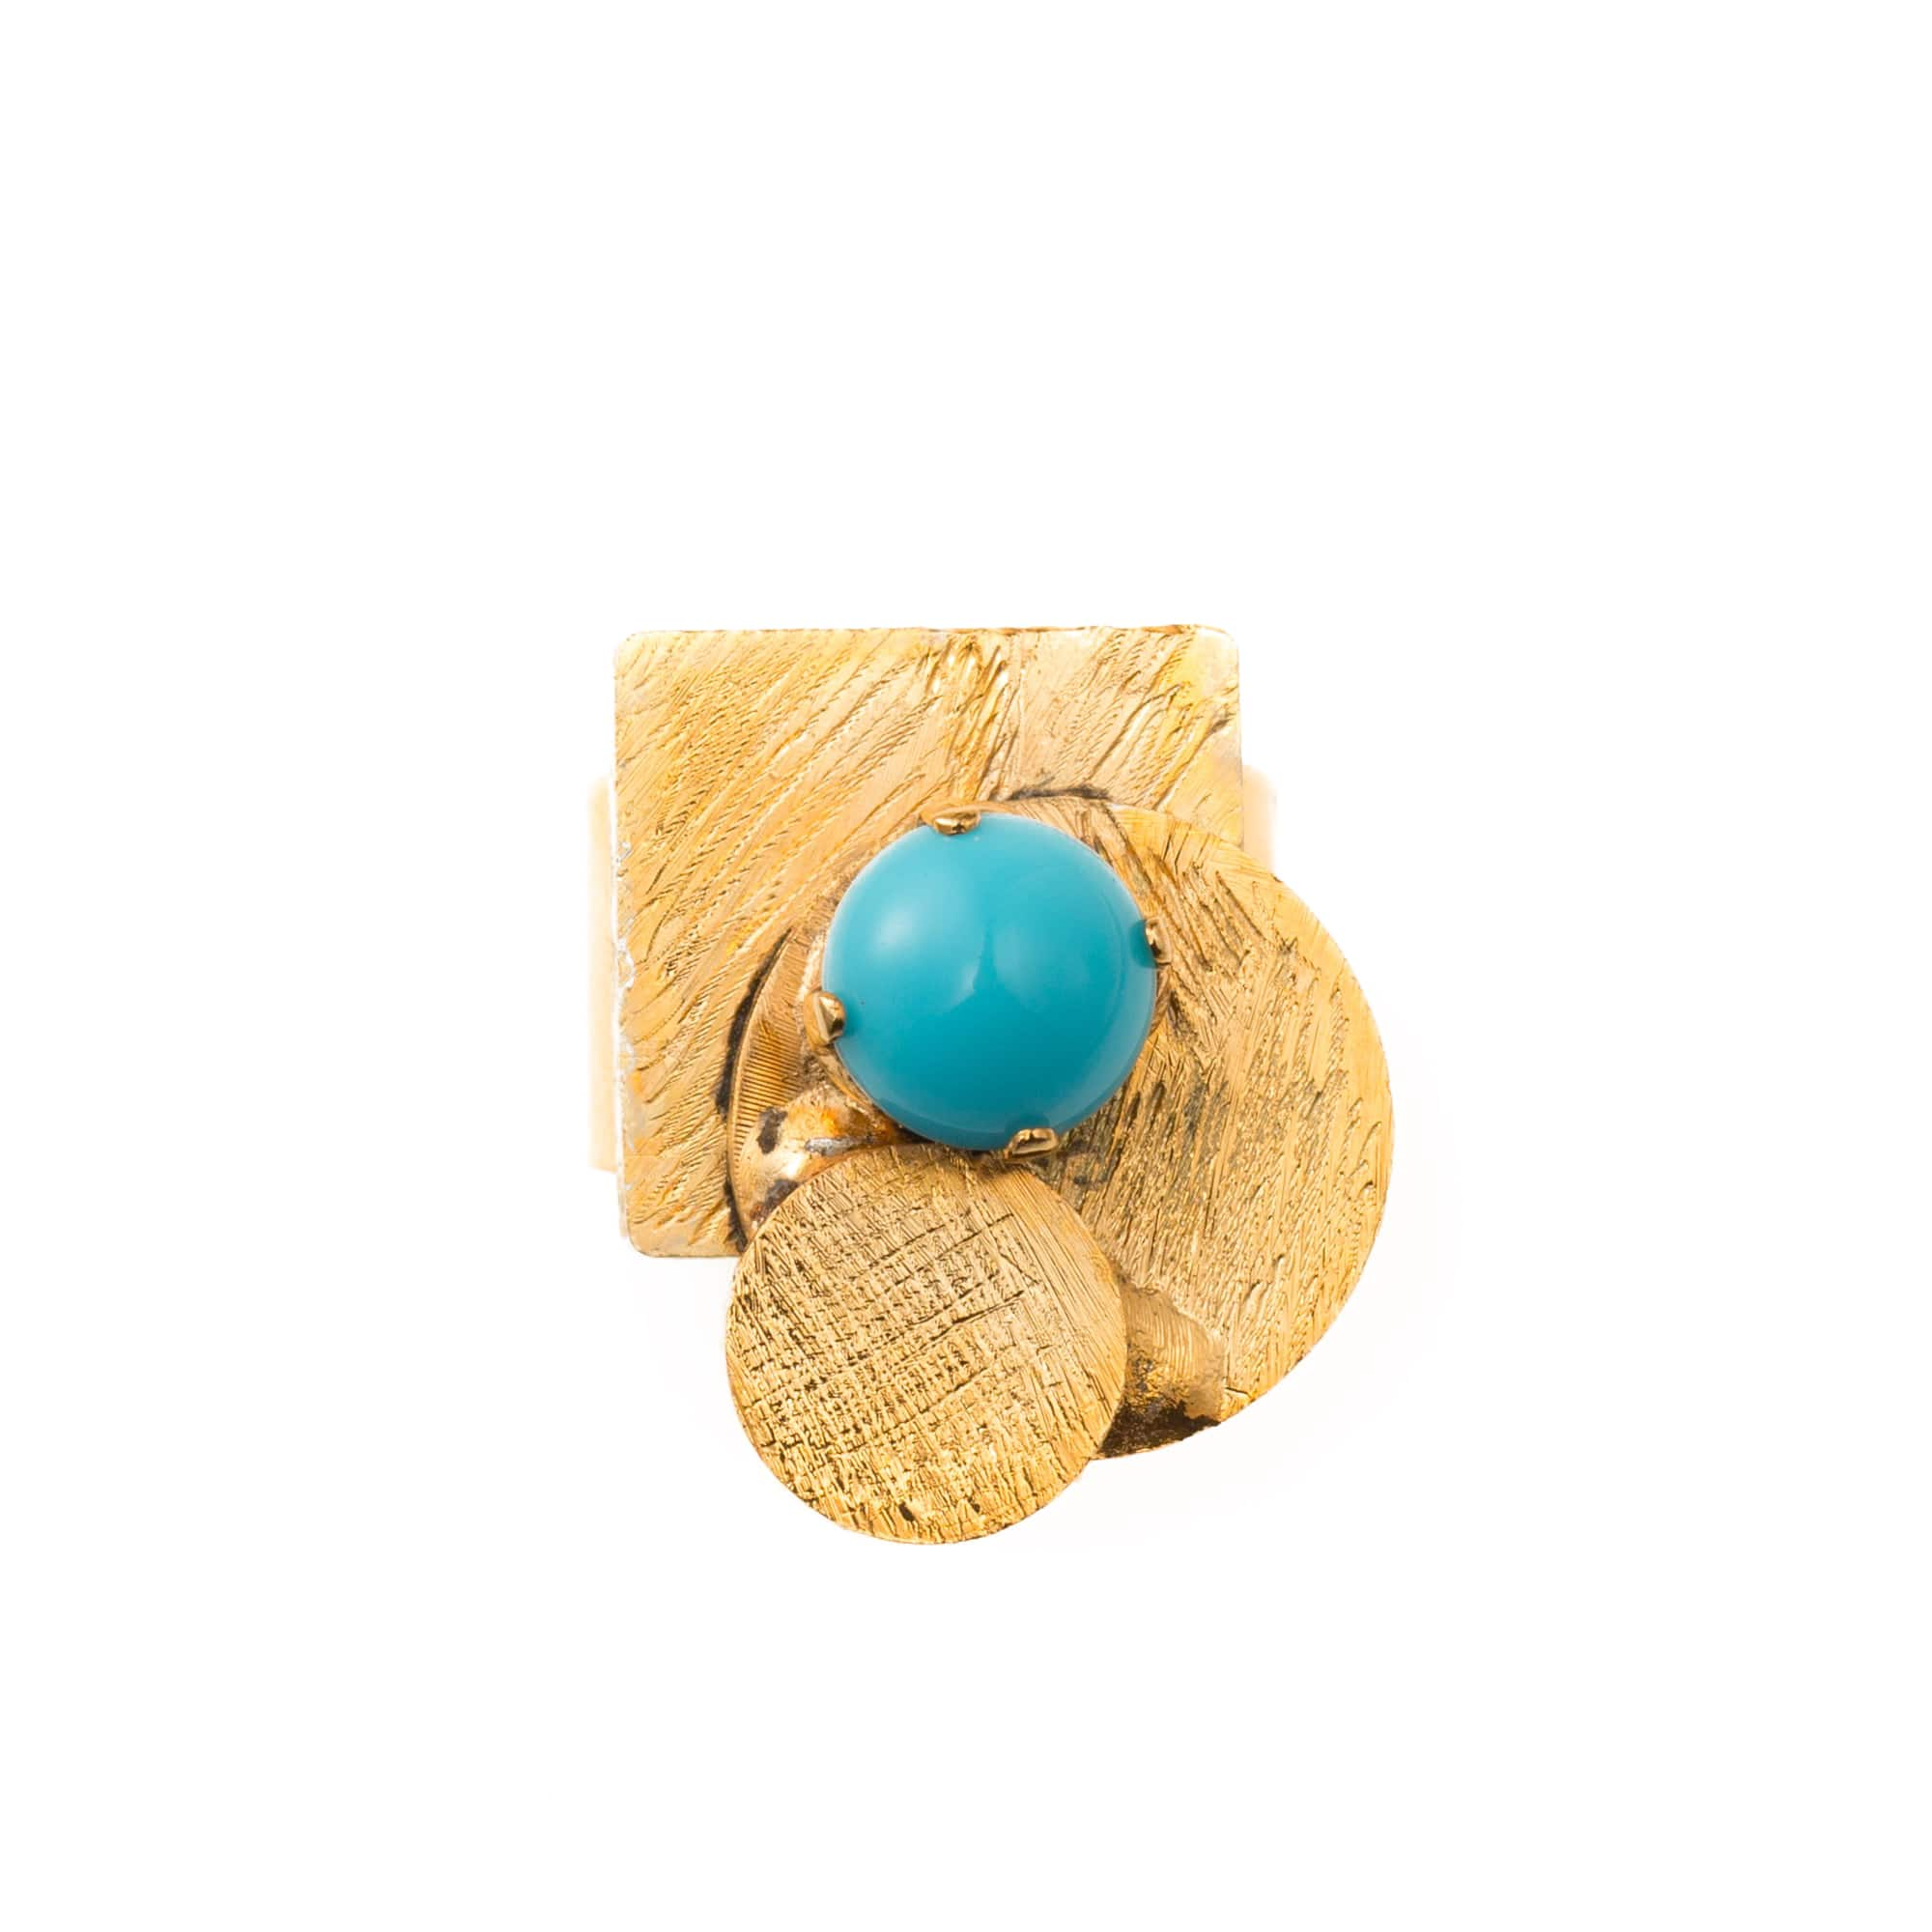 Mondrian Ring With Light Blue Crystals - Bona Tondinelli Bijoux